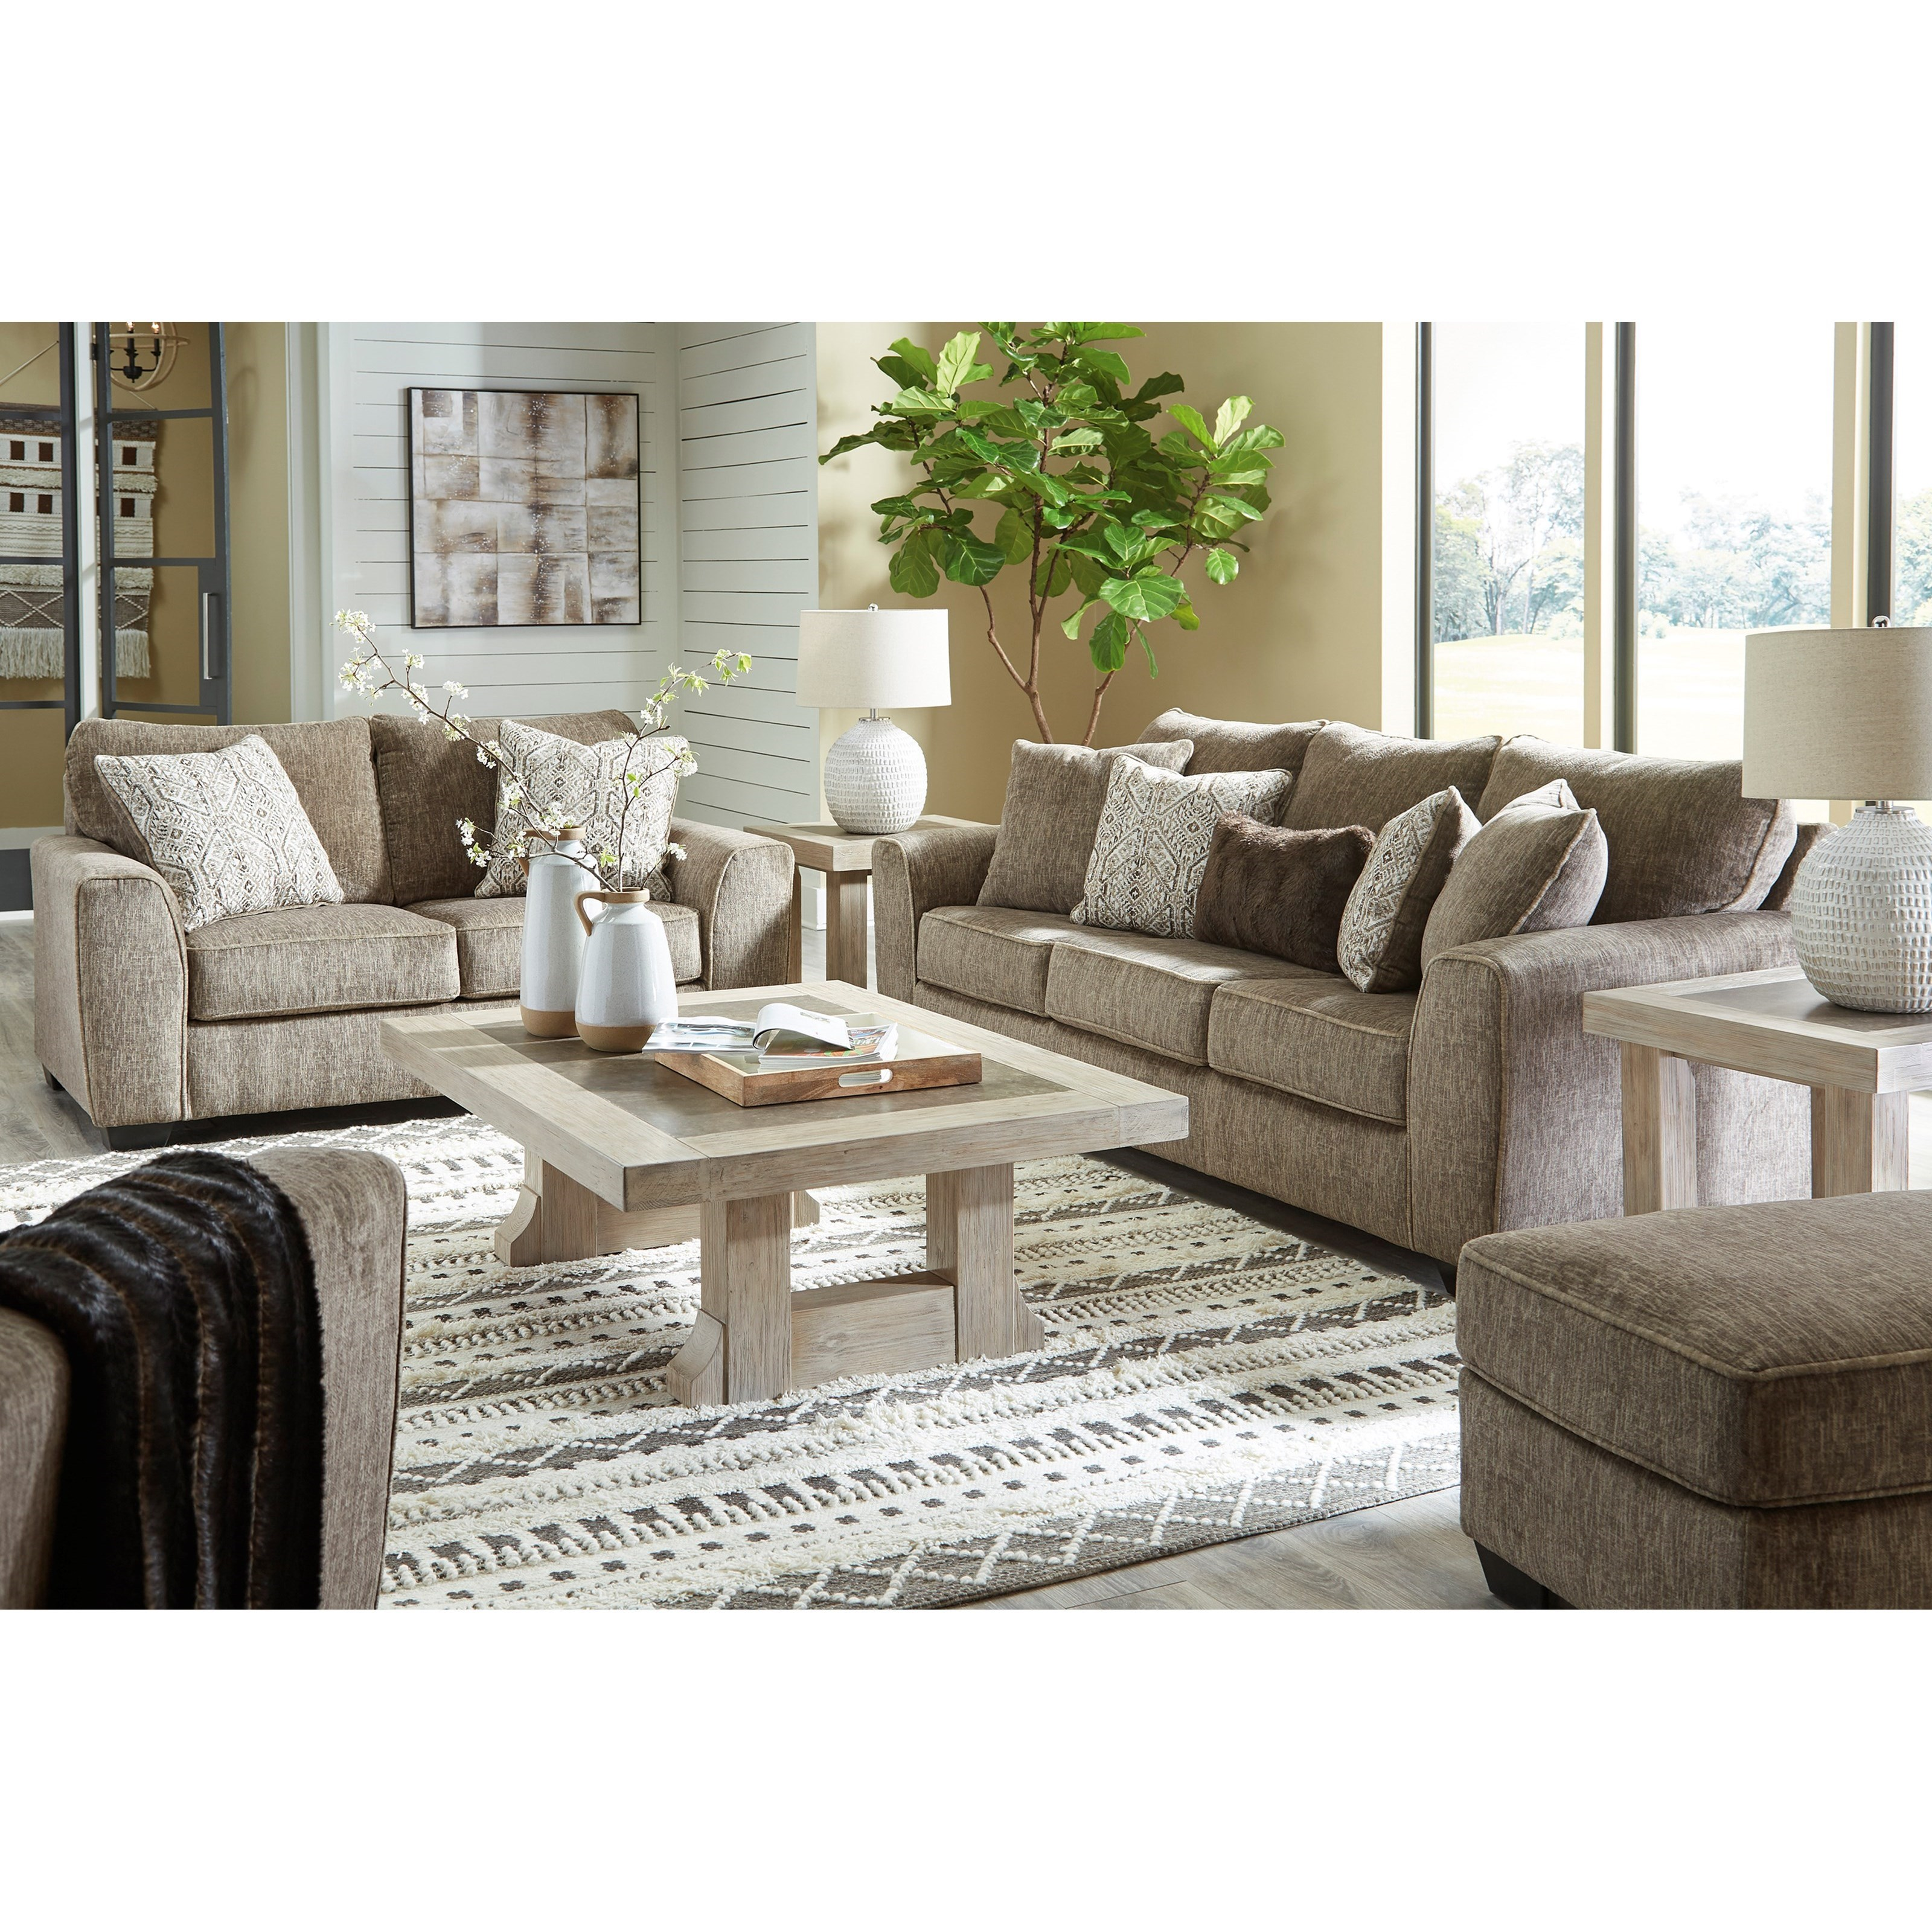 Olin Living Room Group by Benchcraft at Zak's Warehouse Clearance Center